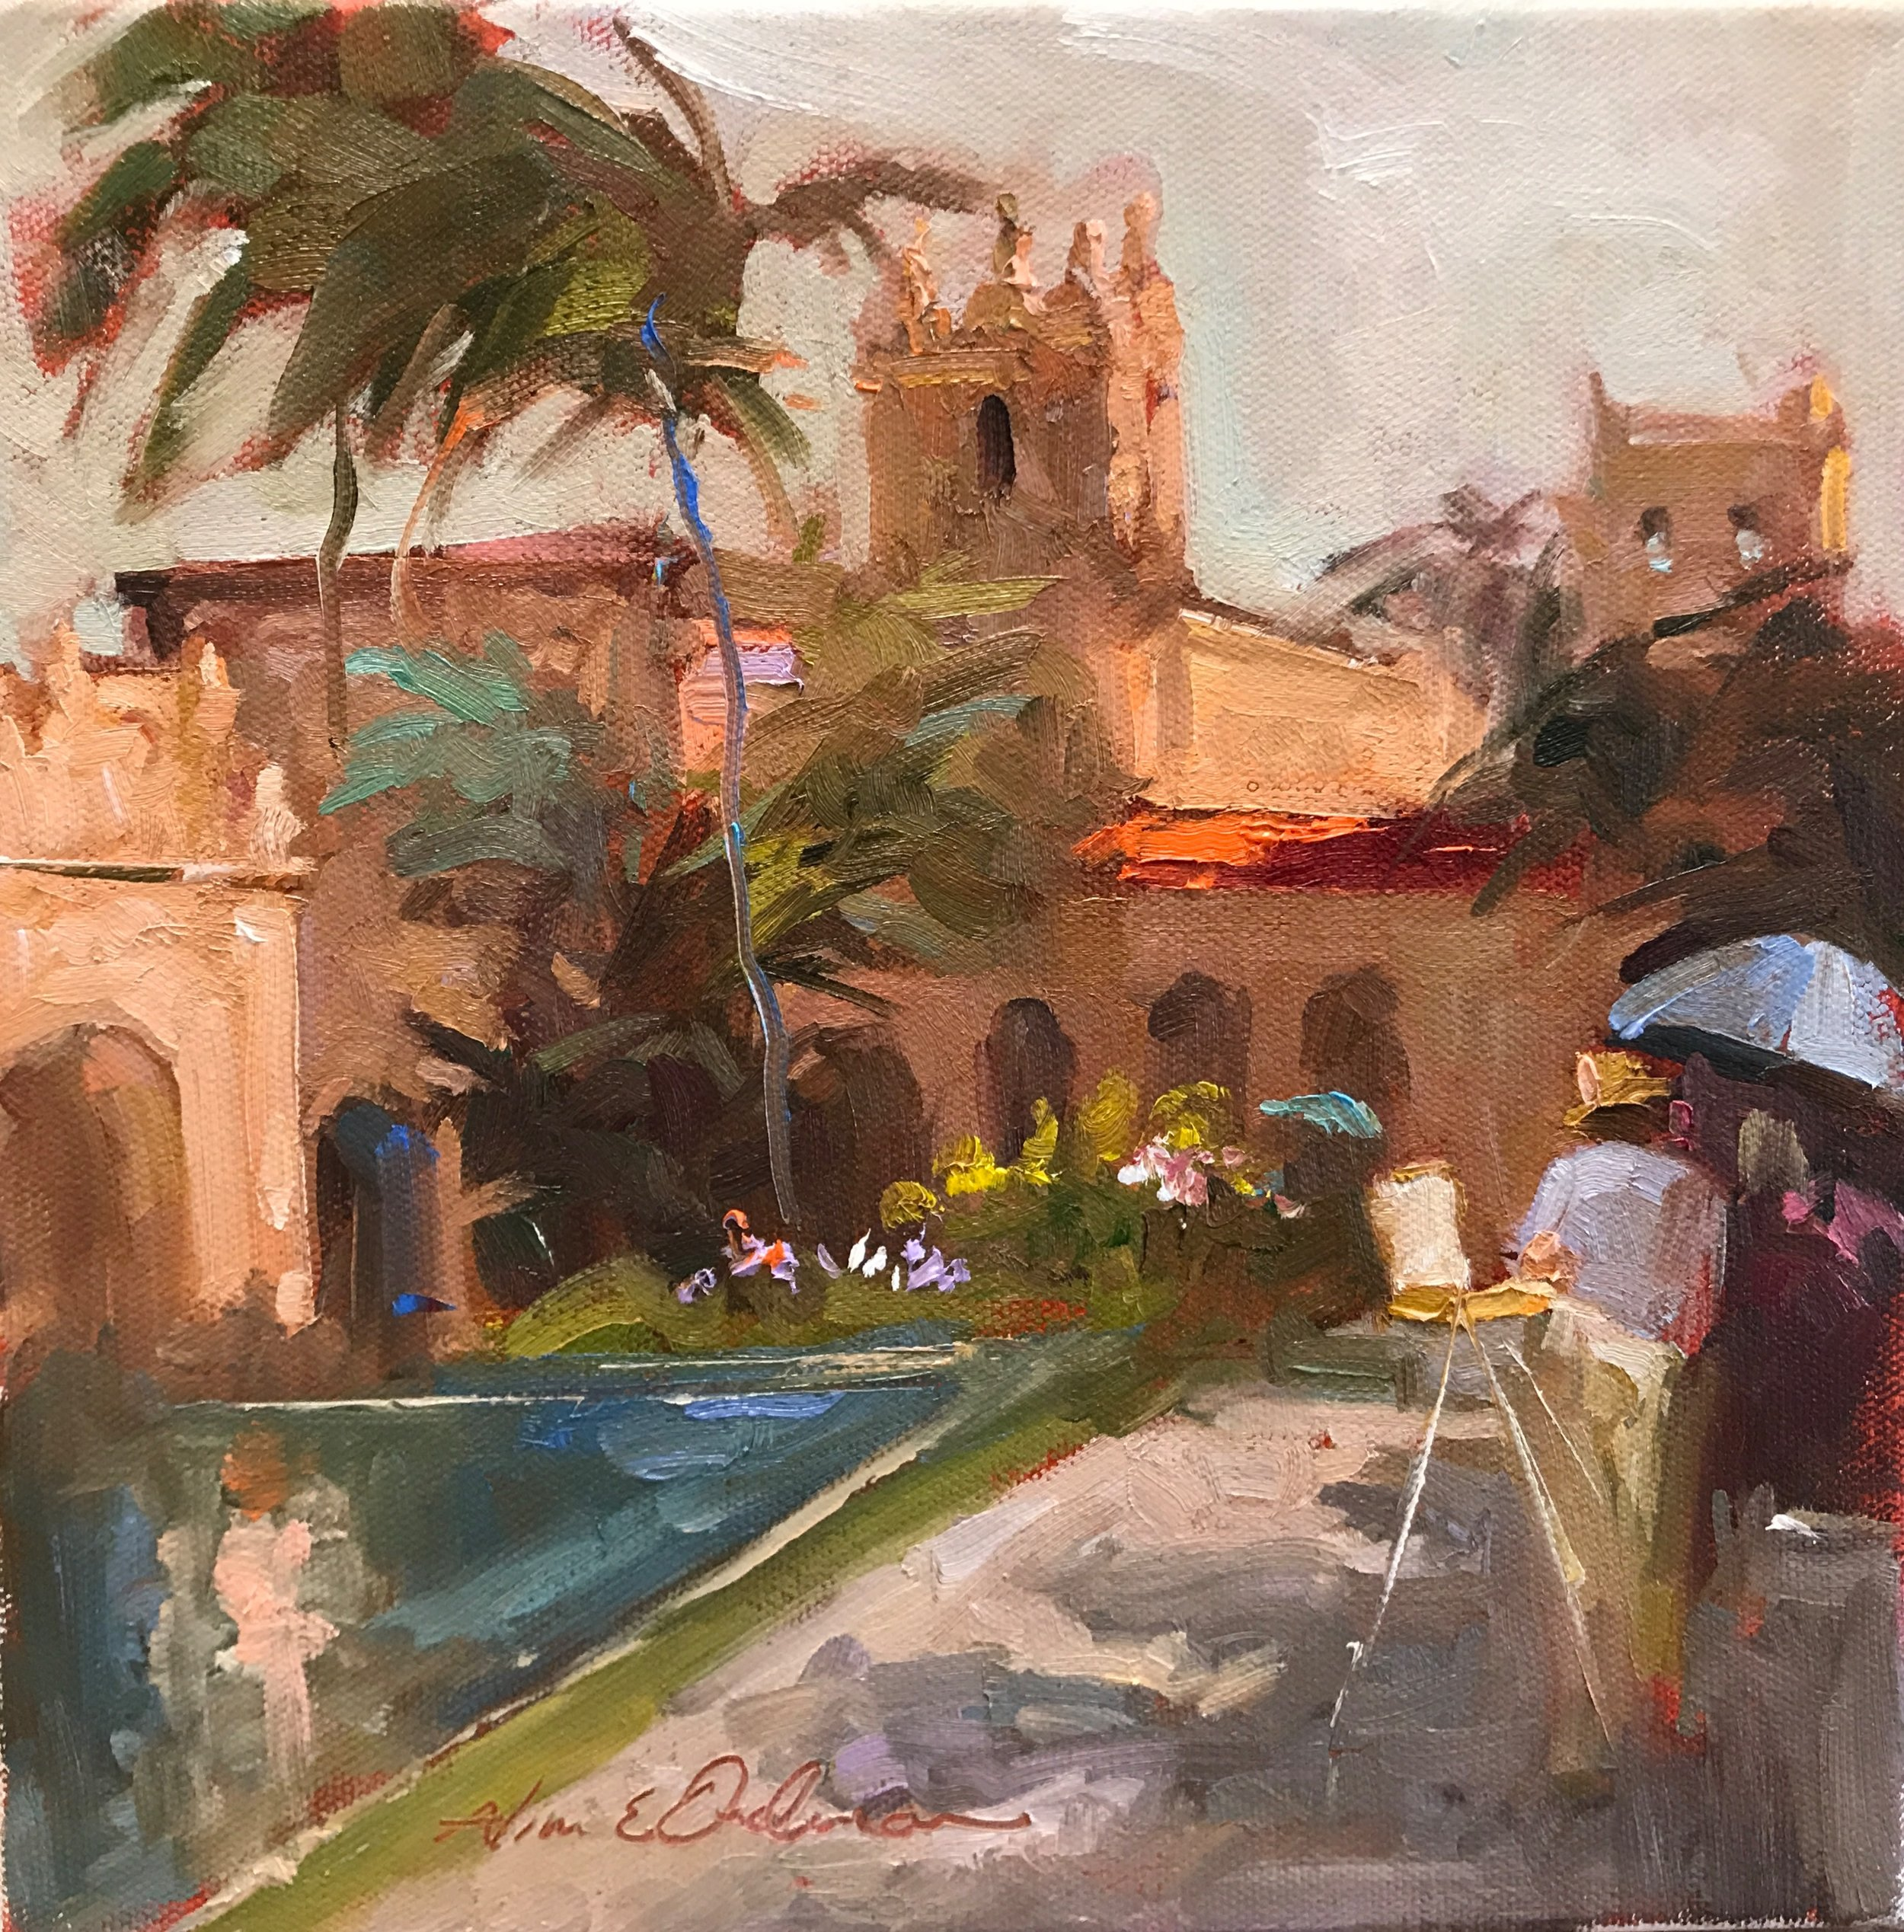 Balboa Park 10 x 10 oil on canvas